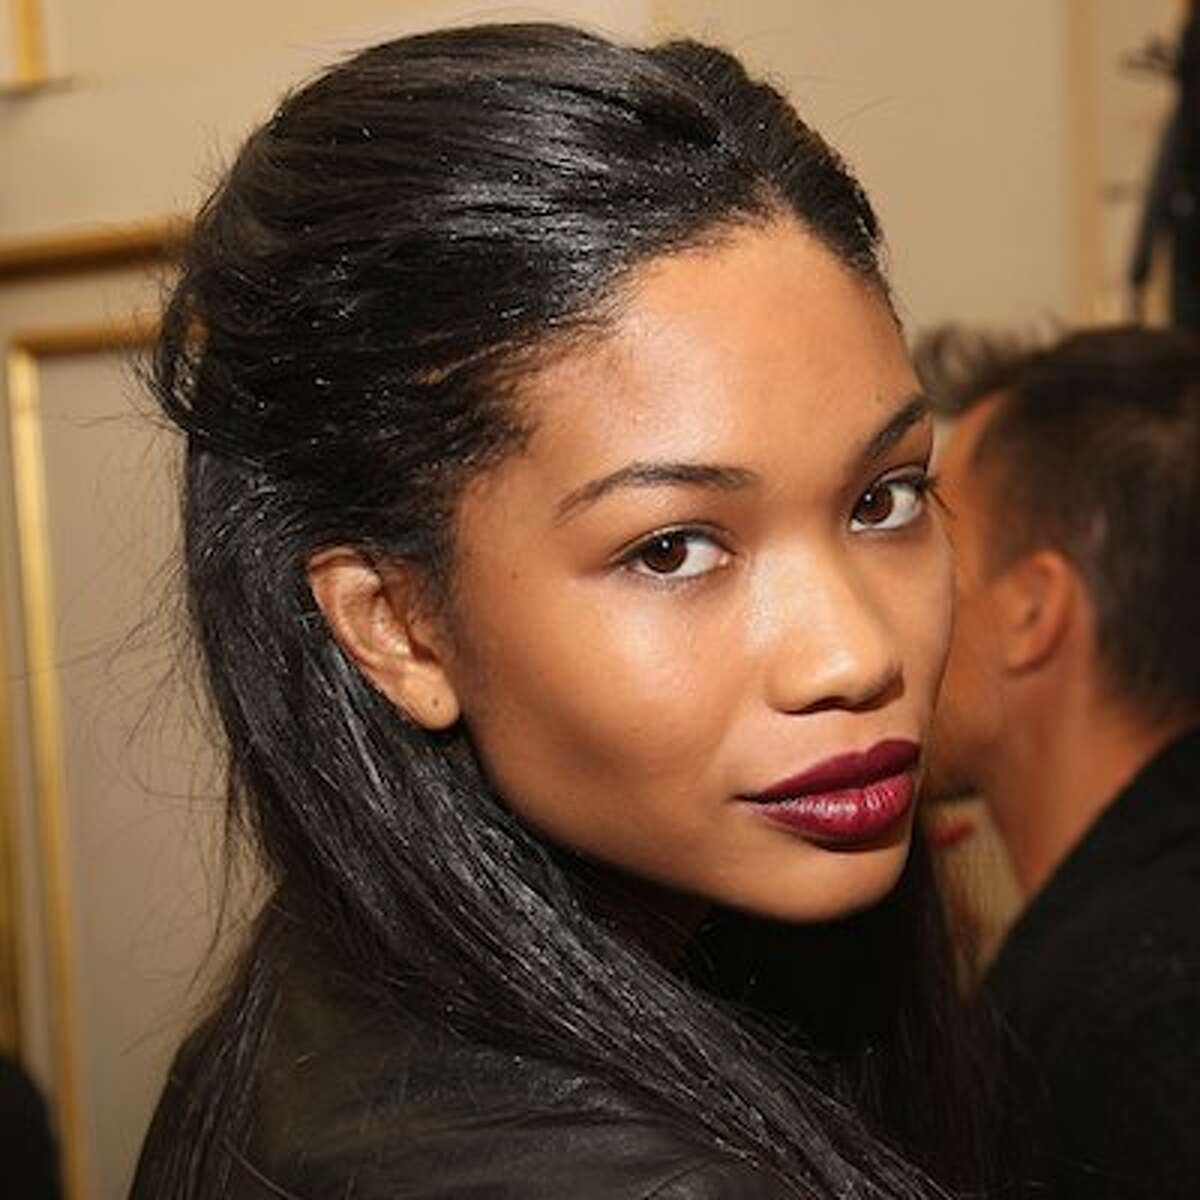 Chanel Iman backstage at Jason Wu during Mercedes-Benz Fashion Week Spring 2010 at St. Regis Hotel on September 11, 2009 in New York City. Mercedes-Benz Fashion Week Spring 2010 - Jason Wu - Front Row And Backstage St. Regis Hotel New York, NY United States September 11, 2009 Photo by Theo Wargo/WireImage.com To license this image (16945496), contact WireImage.com